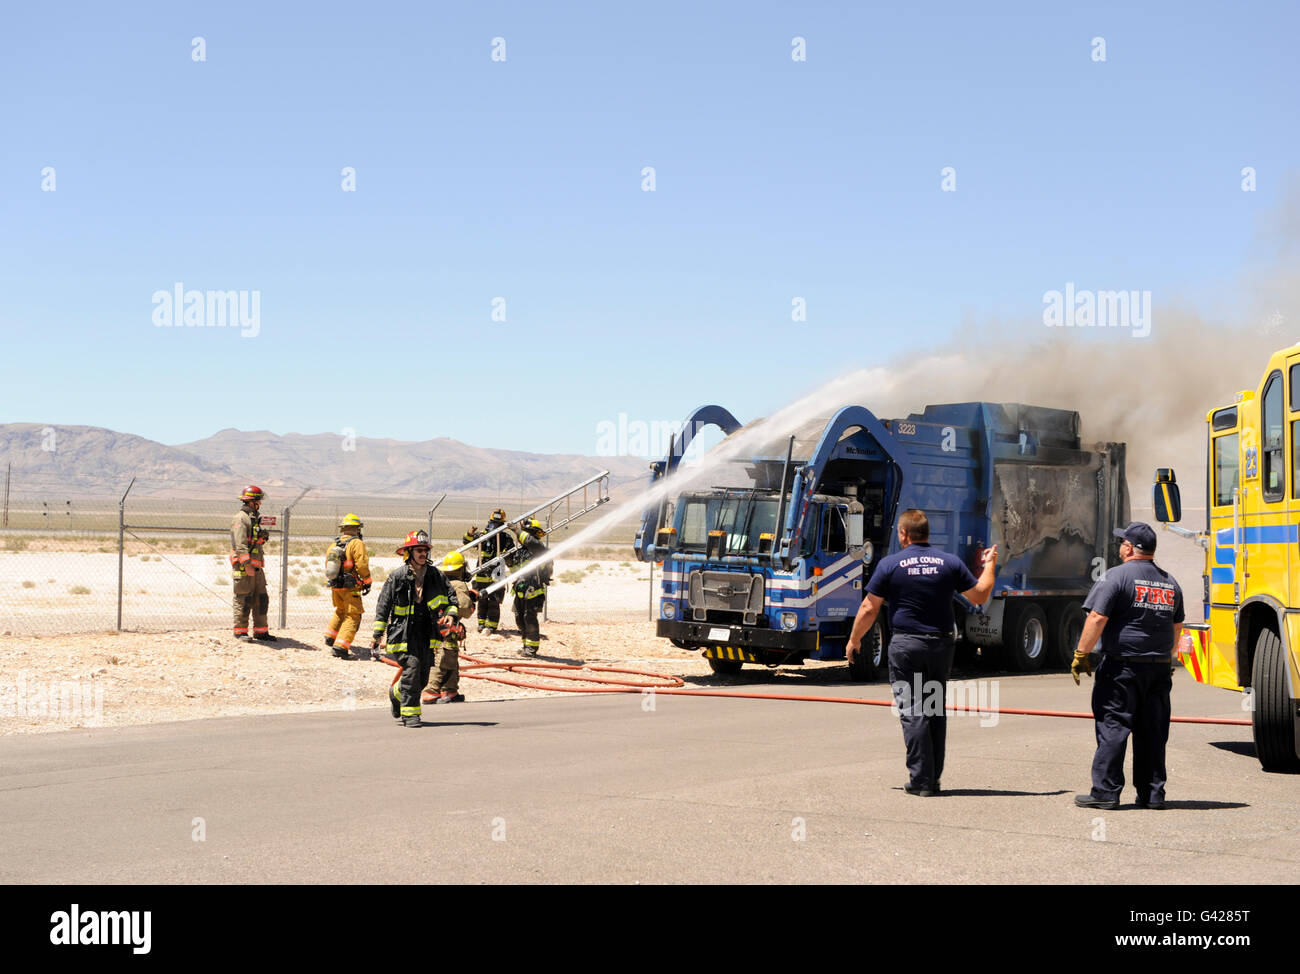 Las Vegas, Nevada, USA. 17th June, 2016. North Las Vegas Fire Department battle a garbage truck on fire at the Nevada - Stock Image